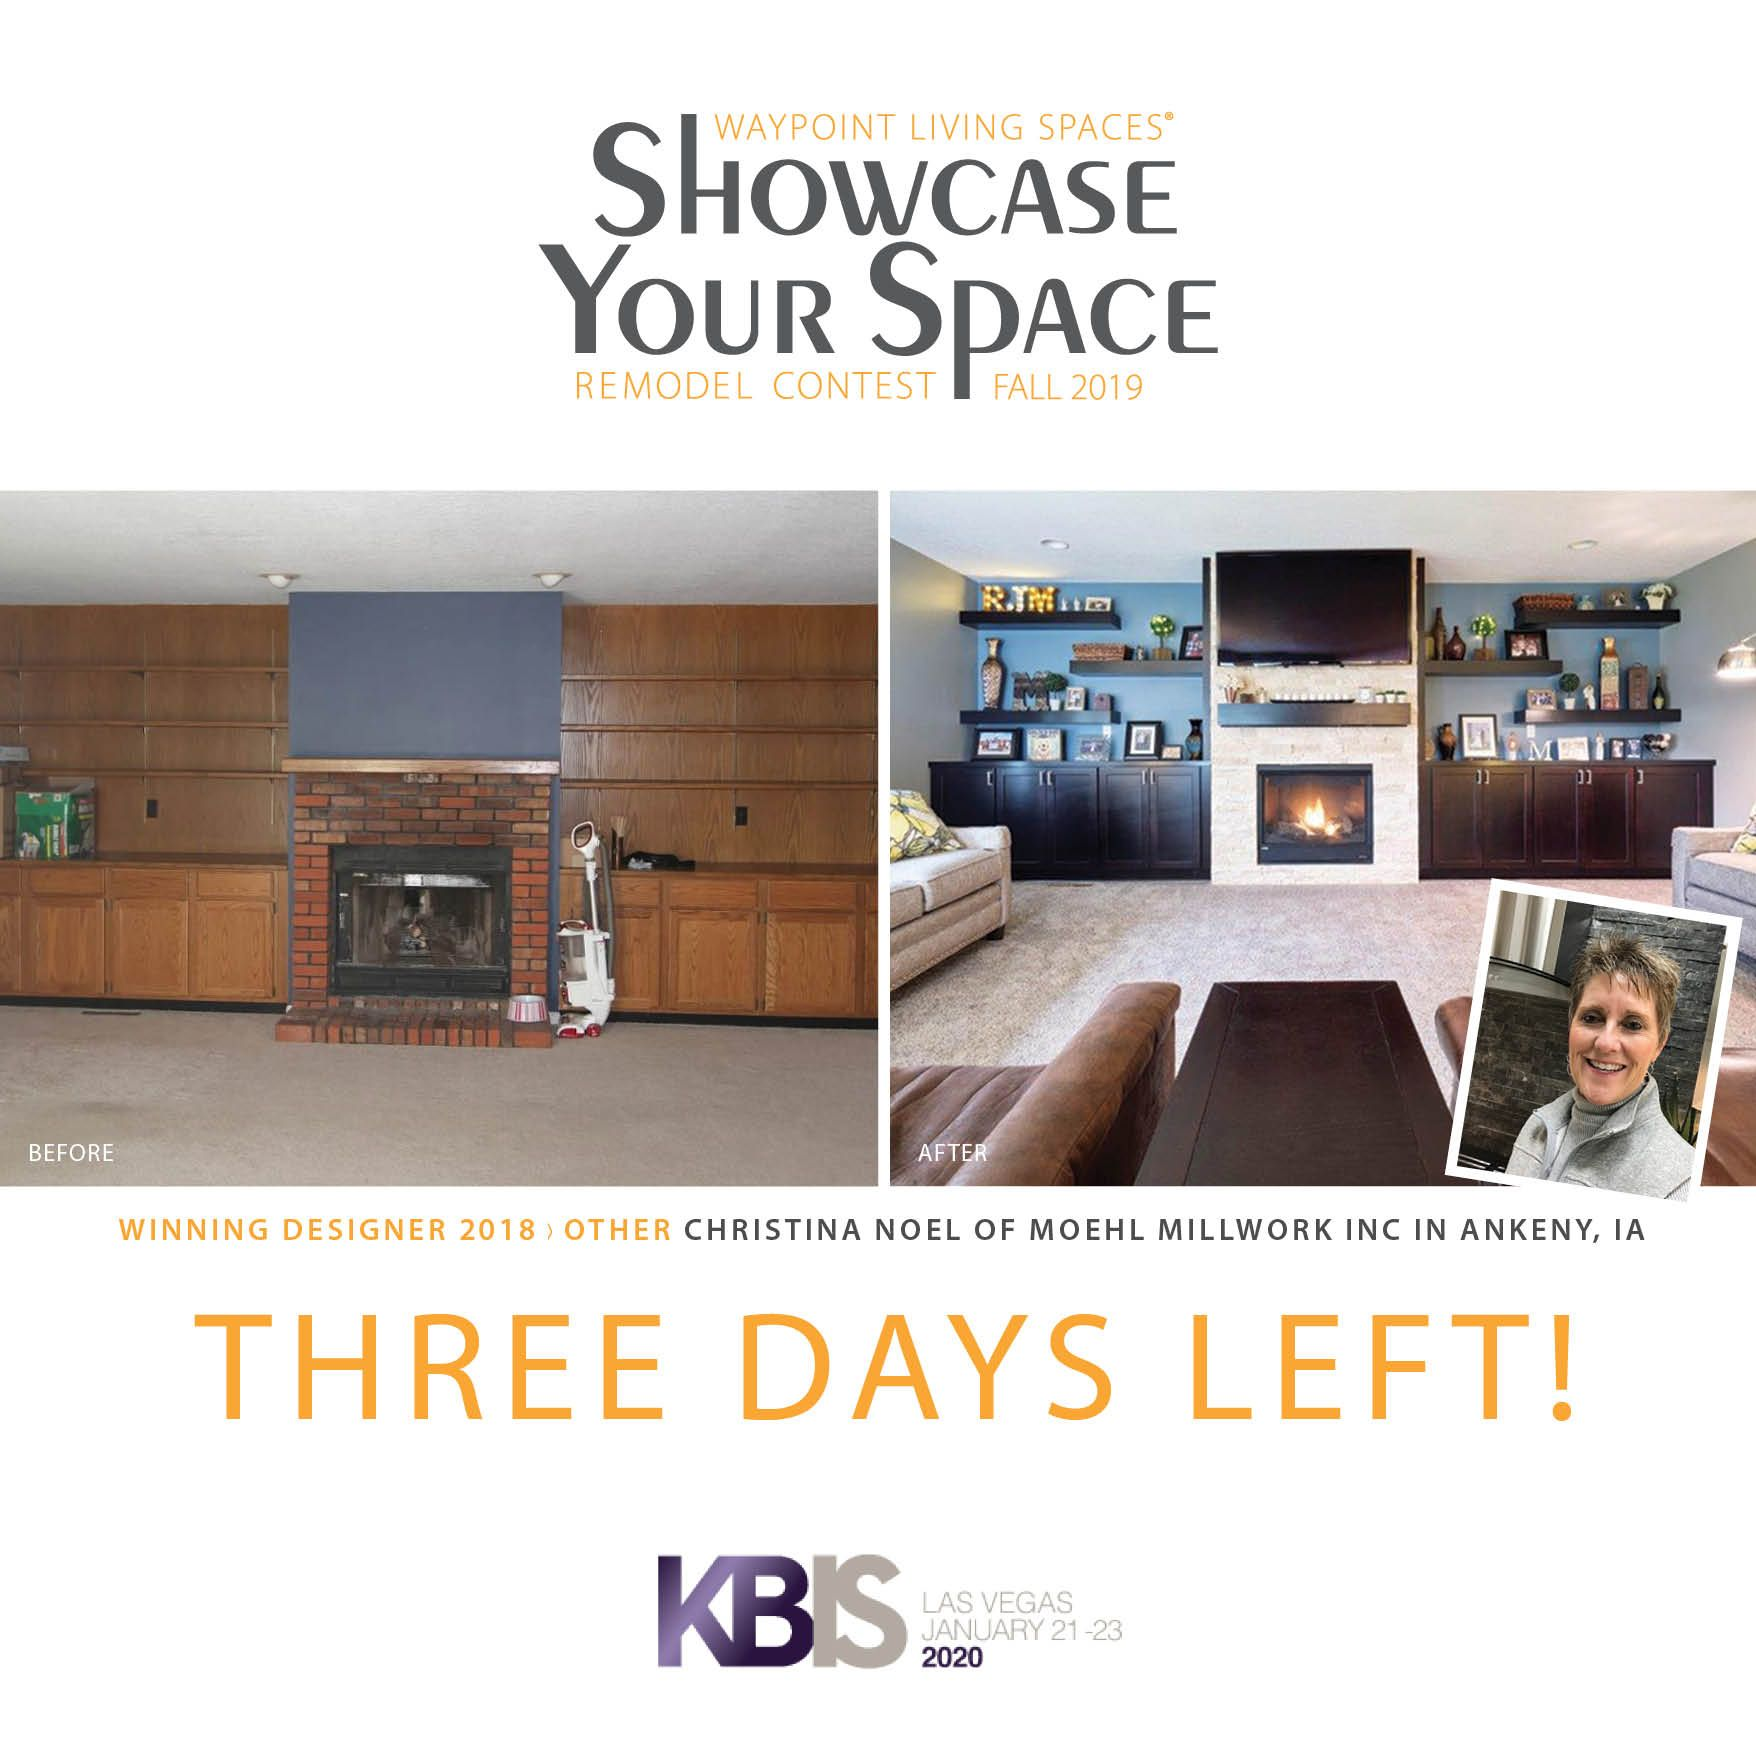 Only 3 days left to submit your winner! #